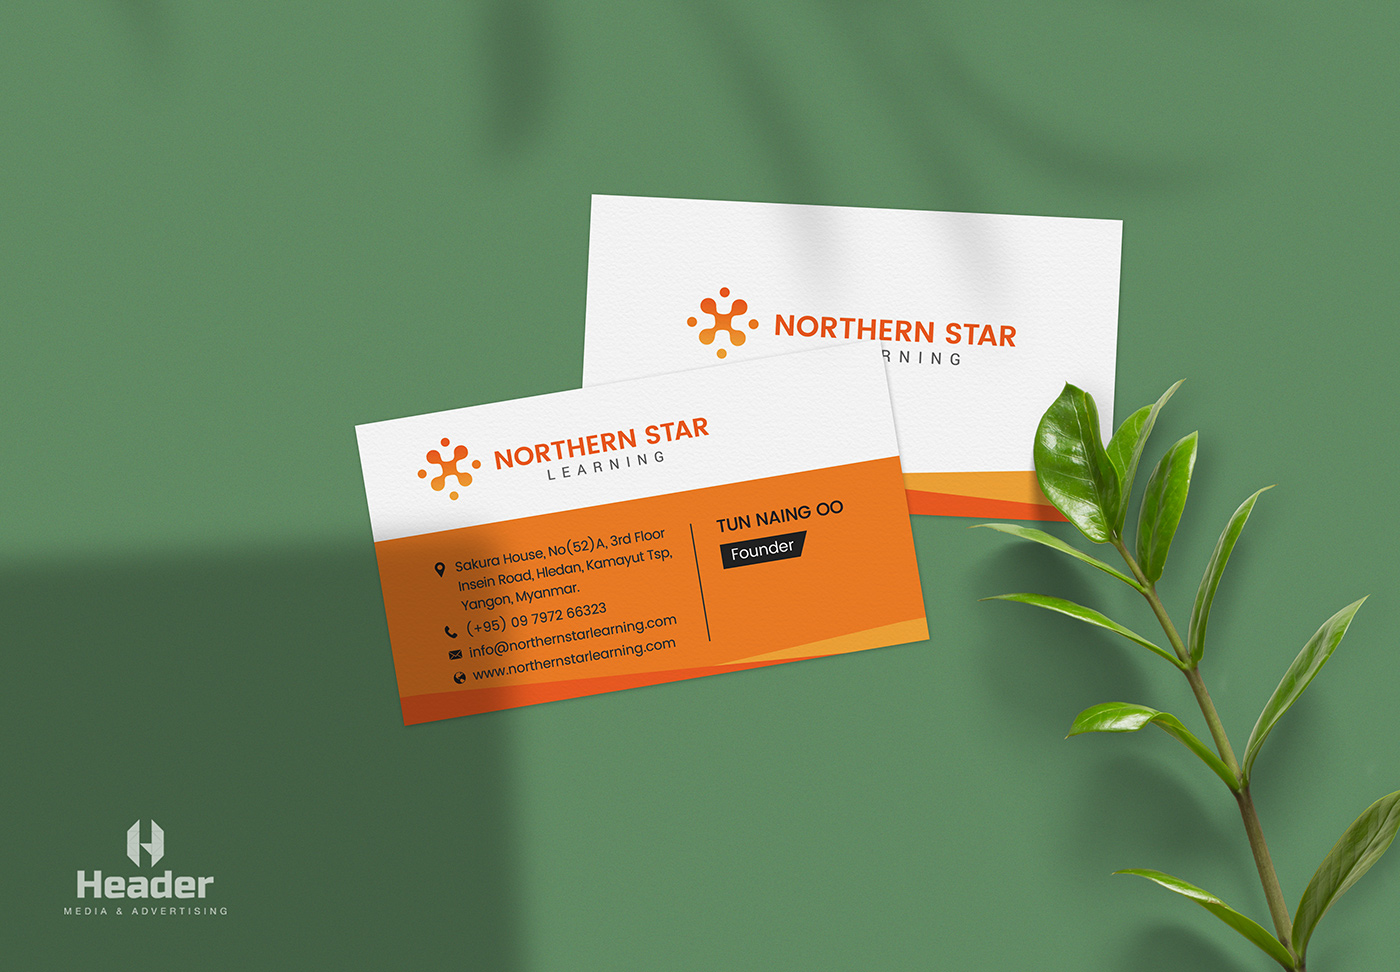 Nothern Star